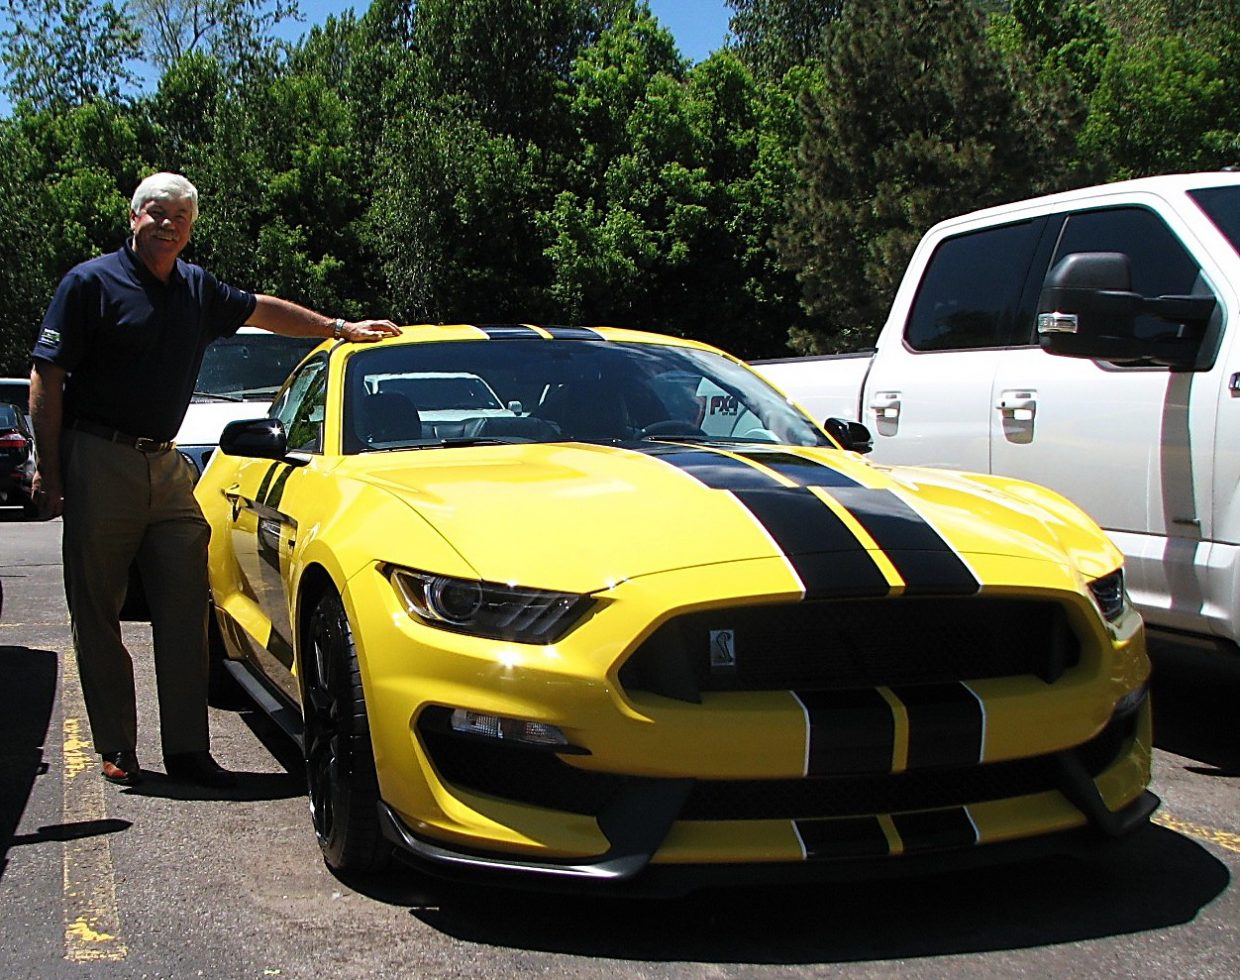 Jeff Carlson, president of Glenwood Springs Ford, Summit Ford and Glenwood Springs Subaru, who is the 2016 chairman of the National Automobile Dealers Association, couldn't resist buying this Mustang Shelby 350 GT for himself.